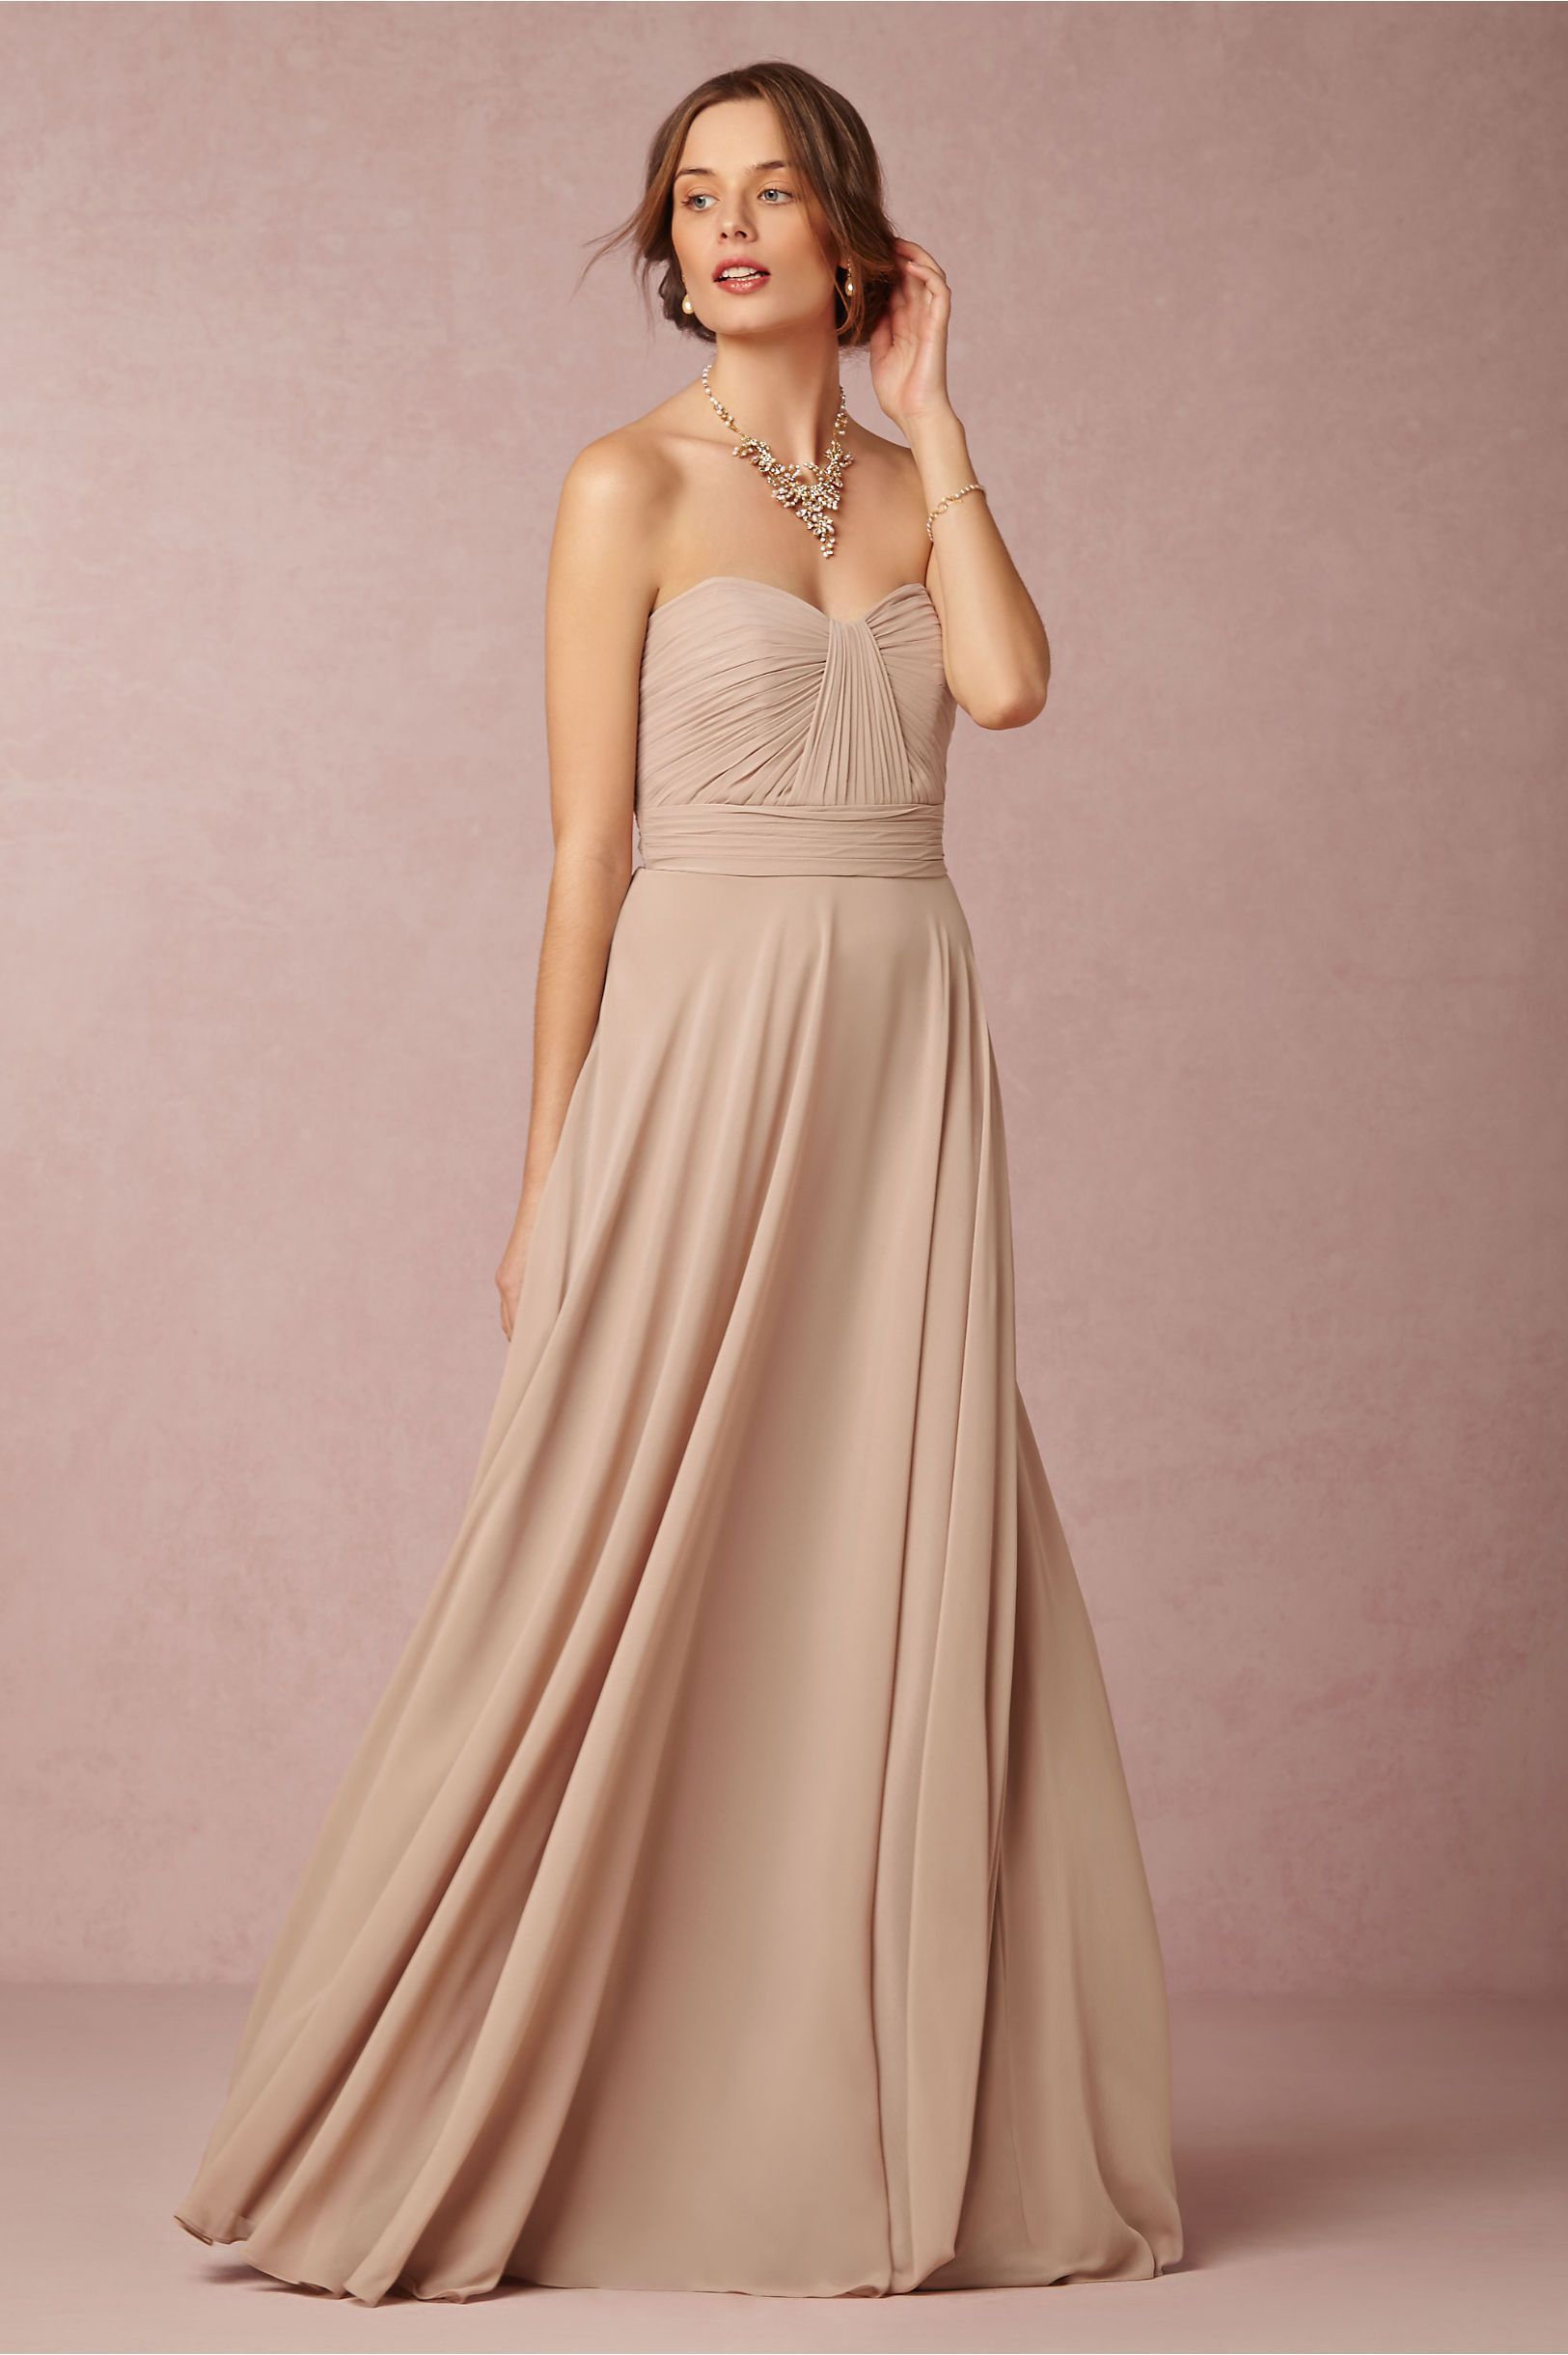 nude neutral bridesmaids dress | Quinn Dress in umber from @BHLDN ...